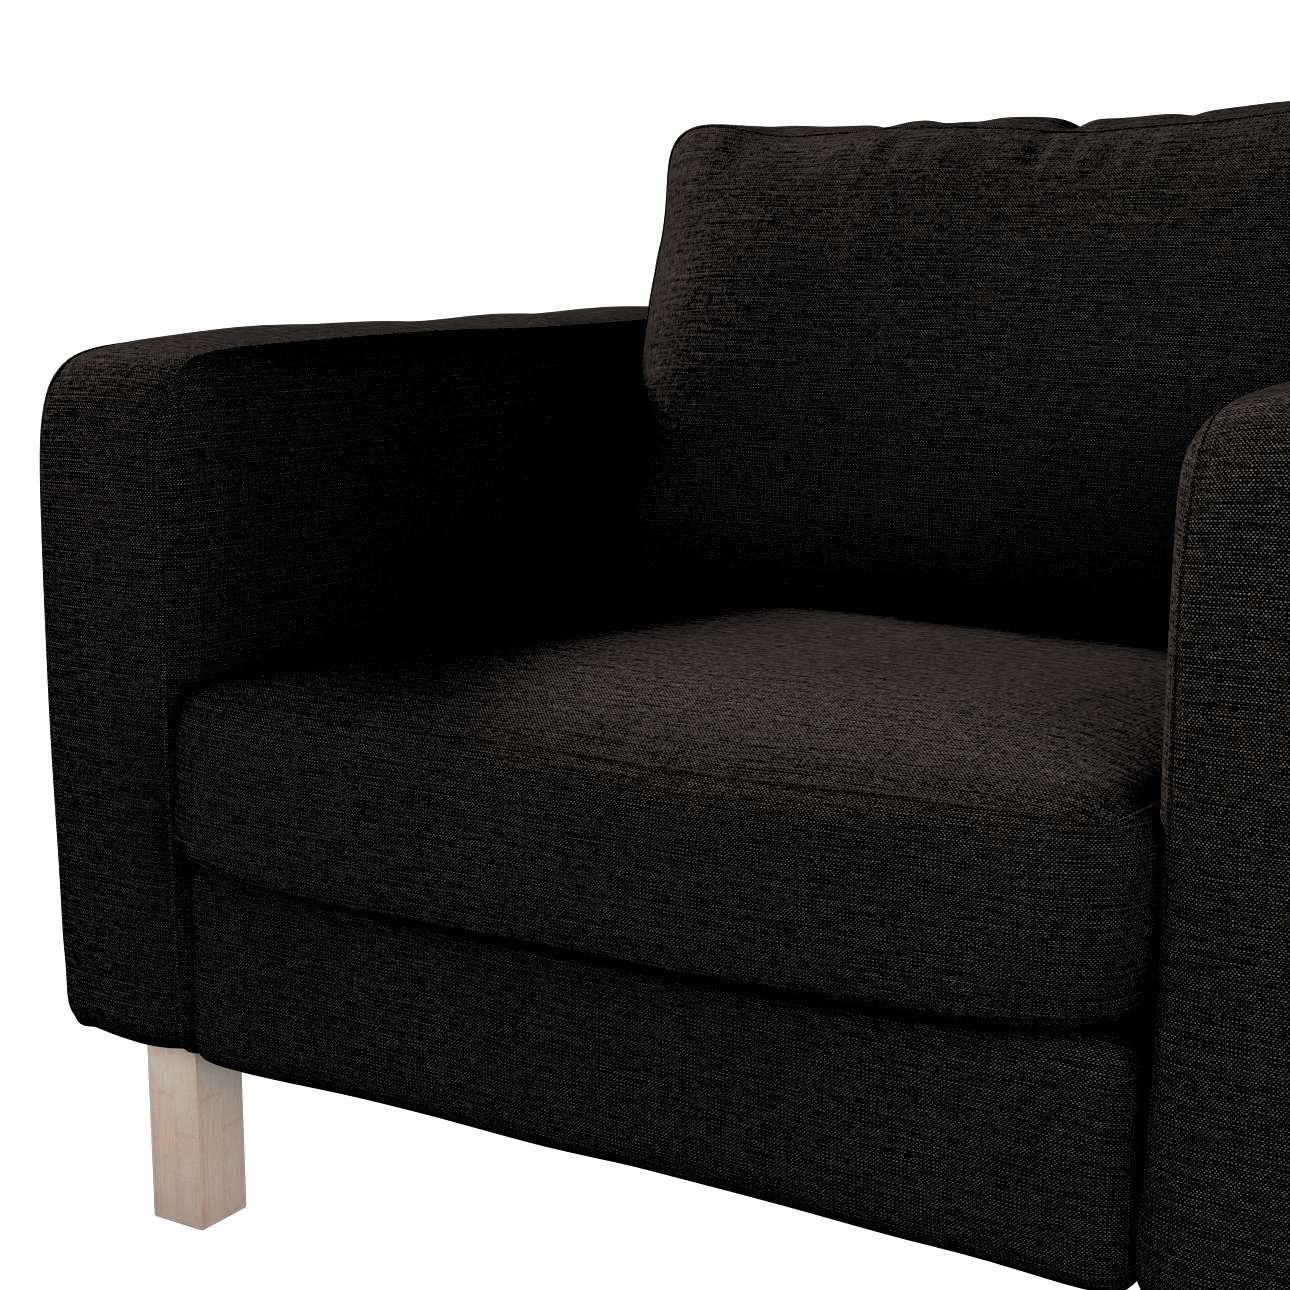 Karlstad armchair cover in collection Madrid, fabric: 105-17